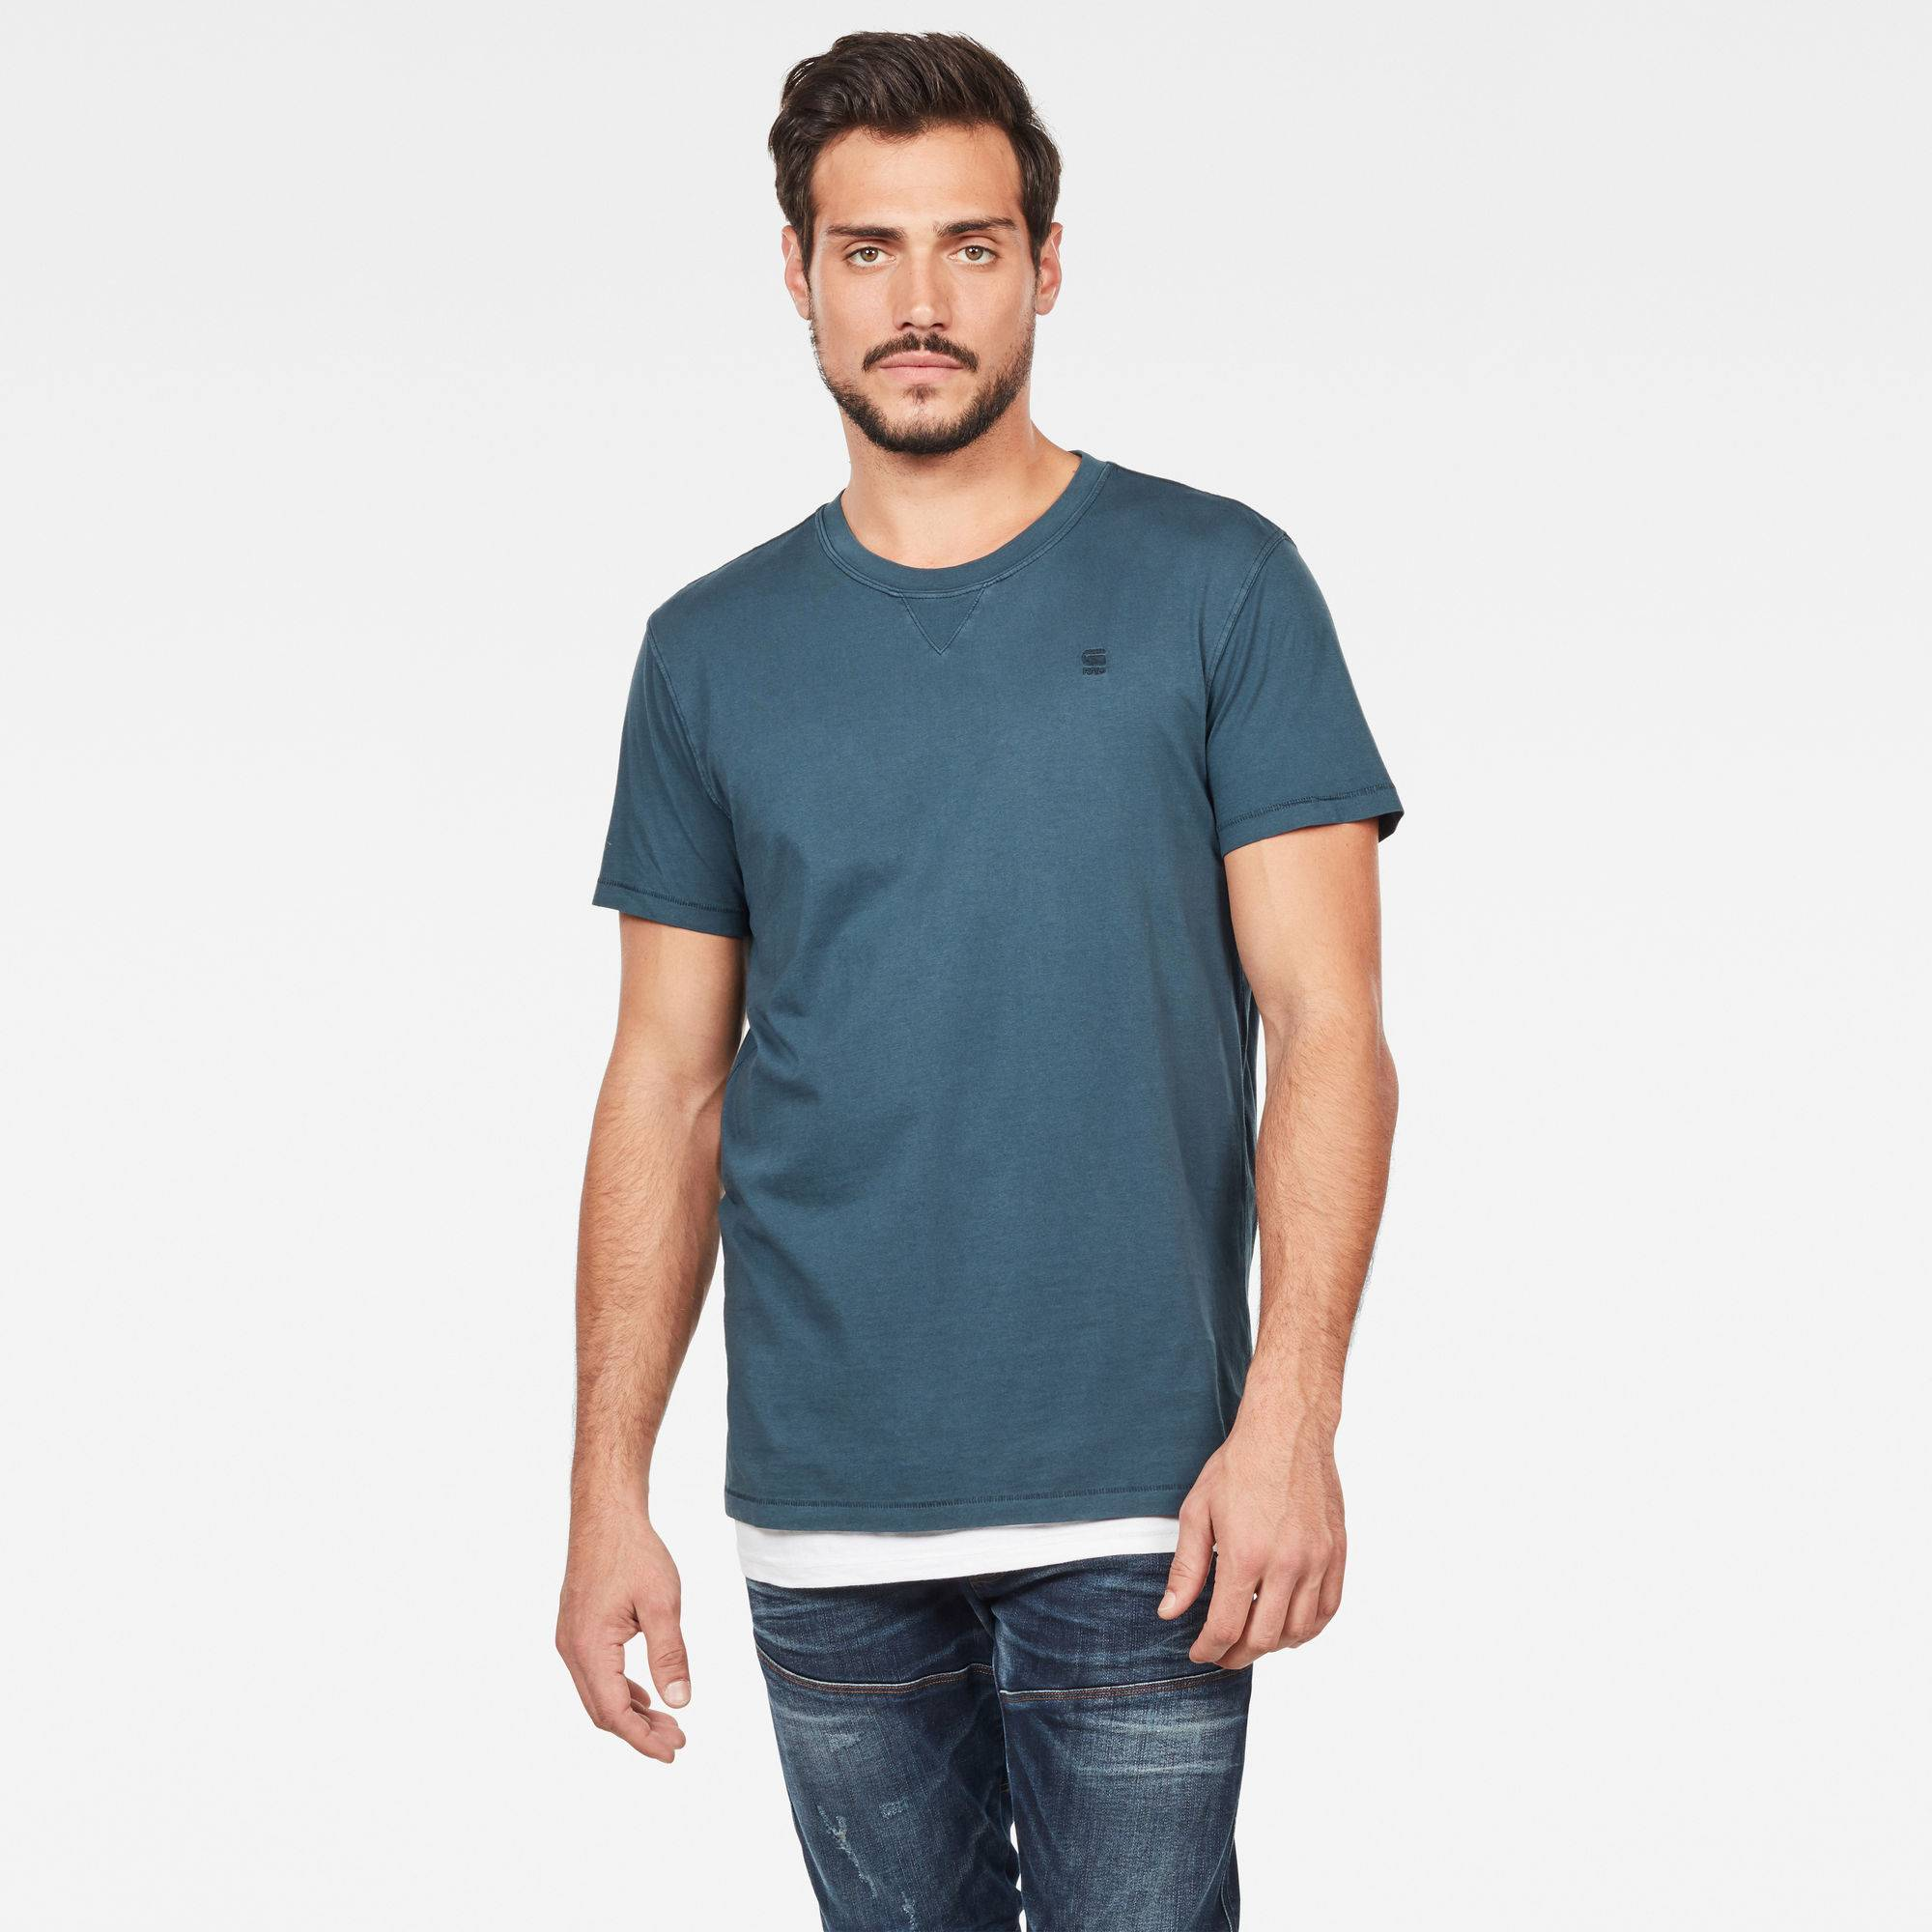 G-star RAW Hommes T-shirt Earth Bleu moyen